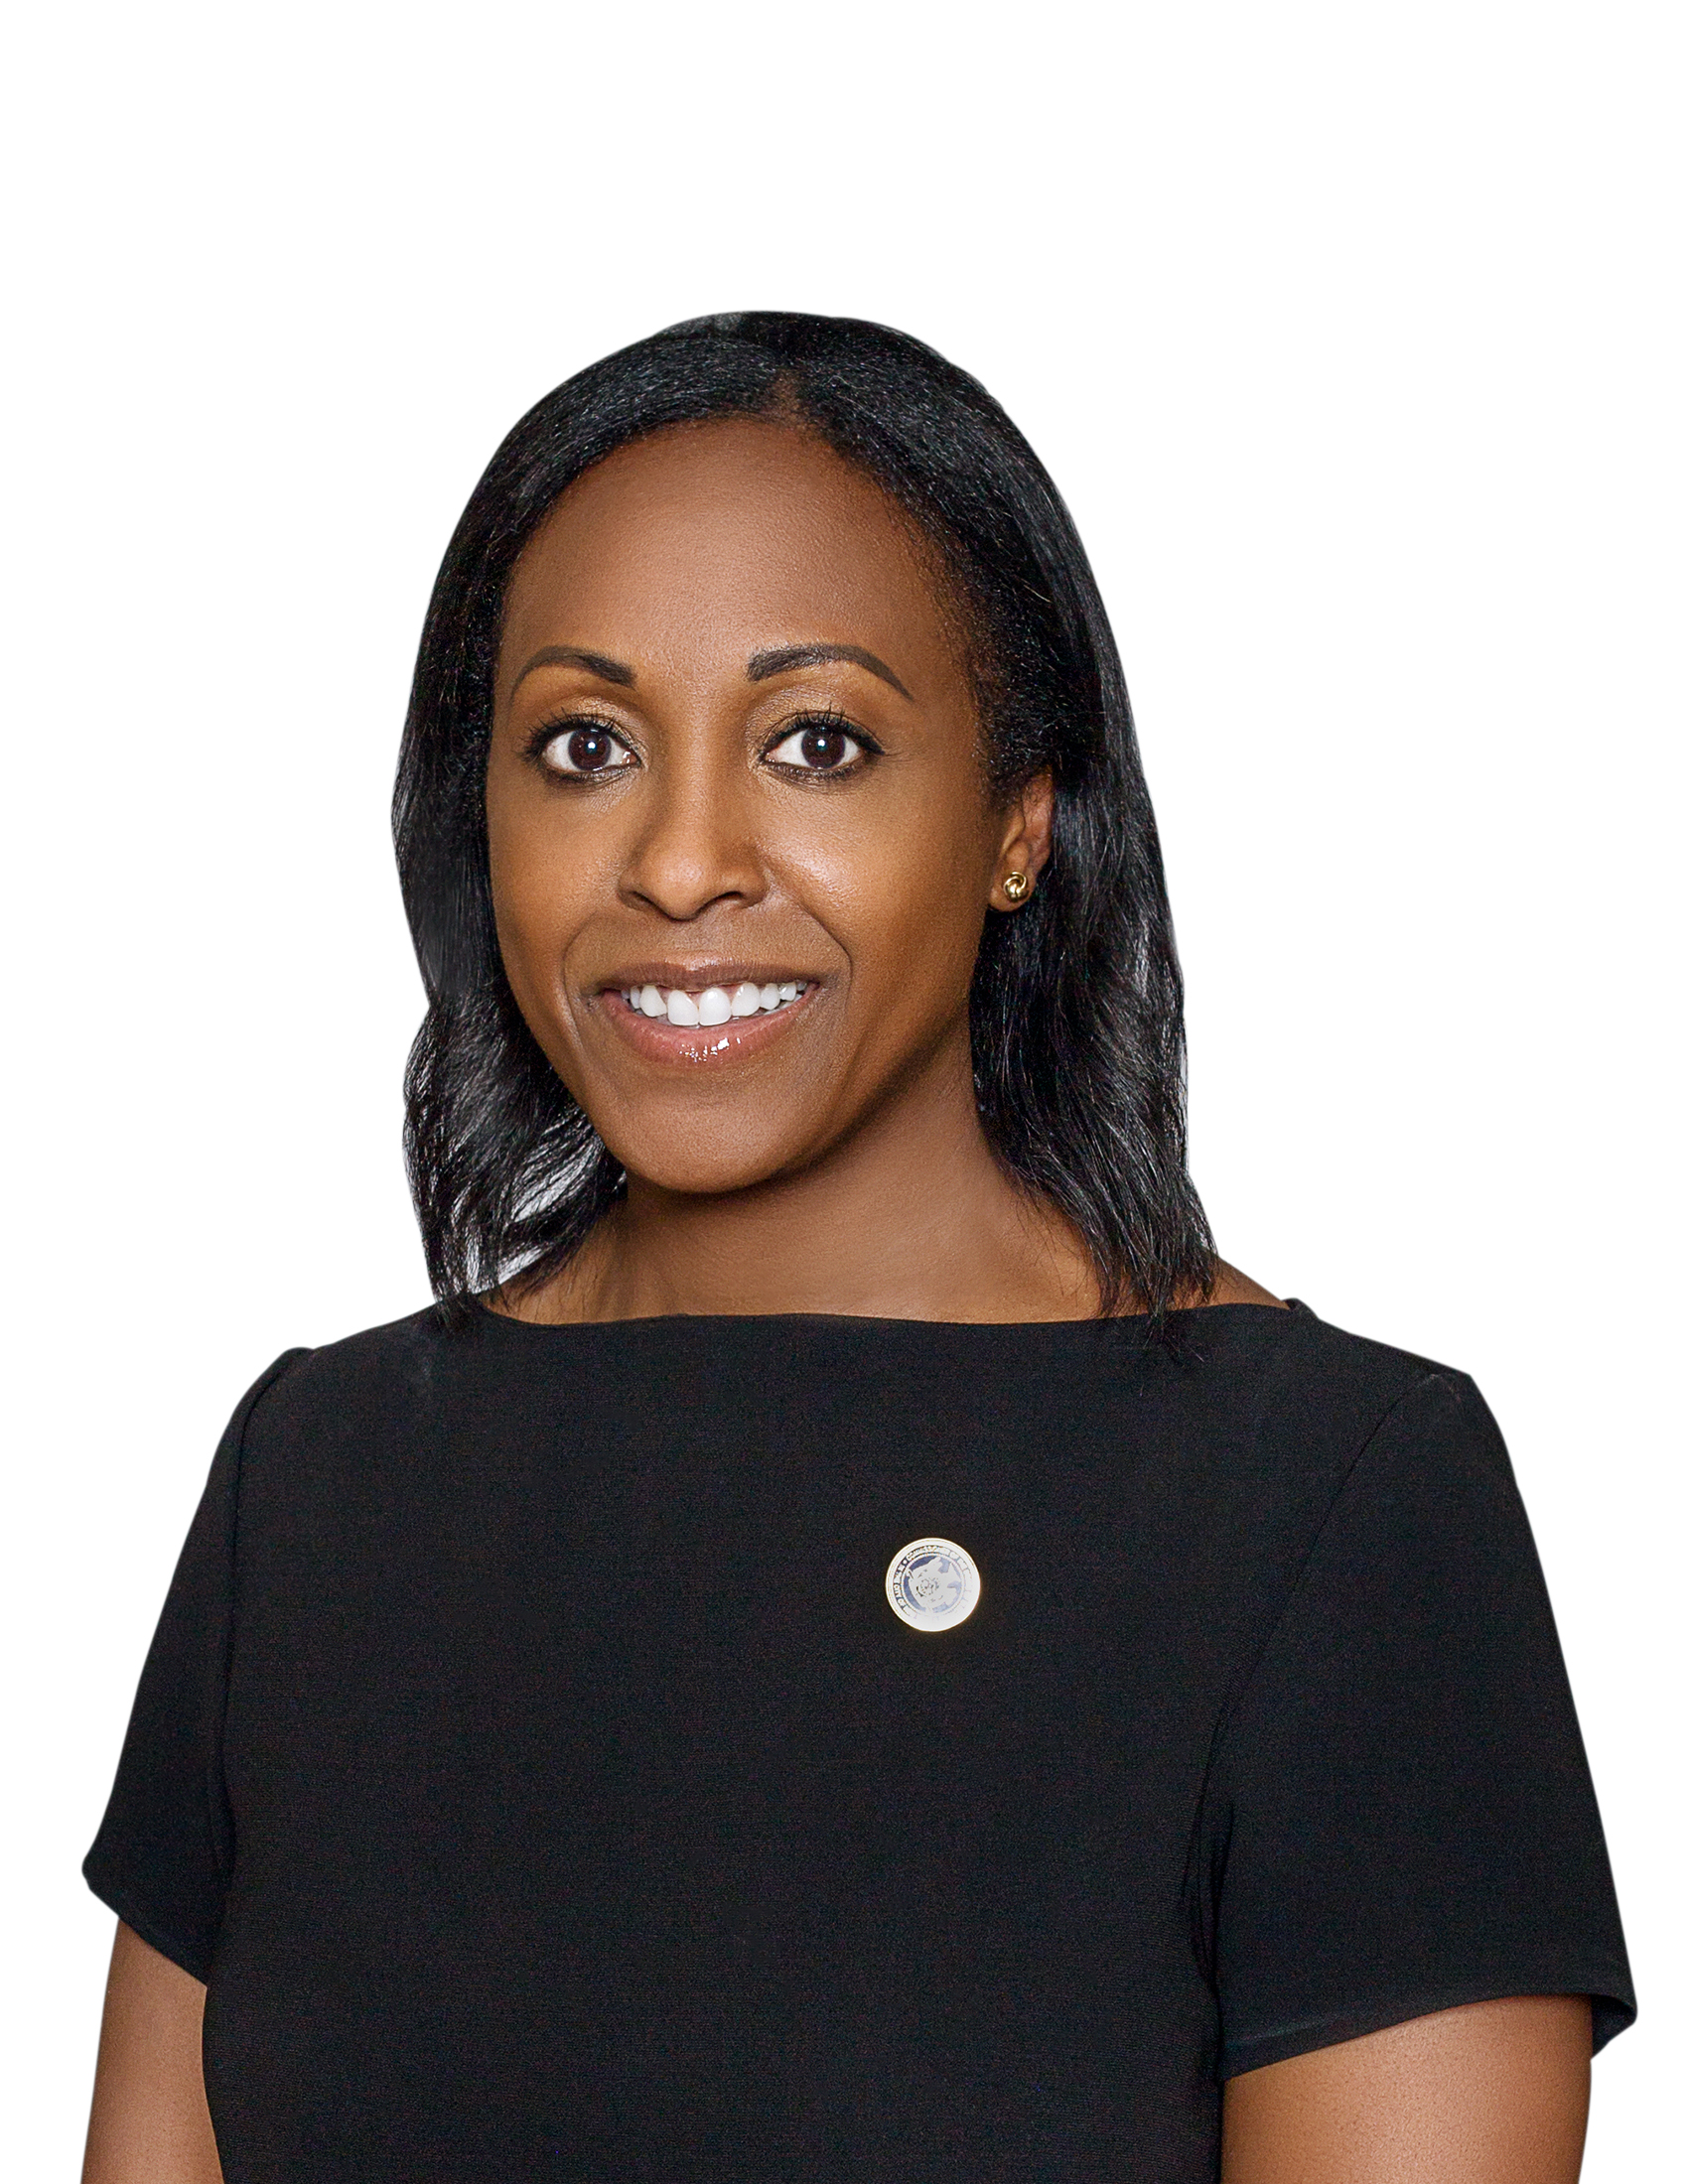 Tiffany Townsend, Commissioner